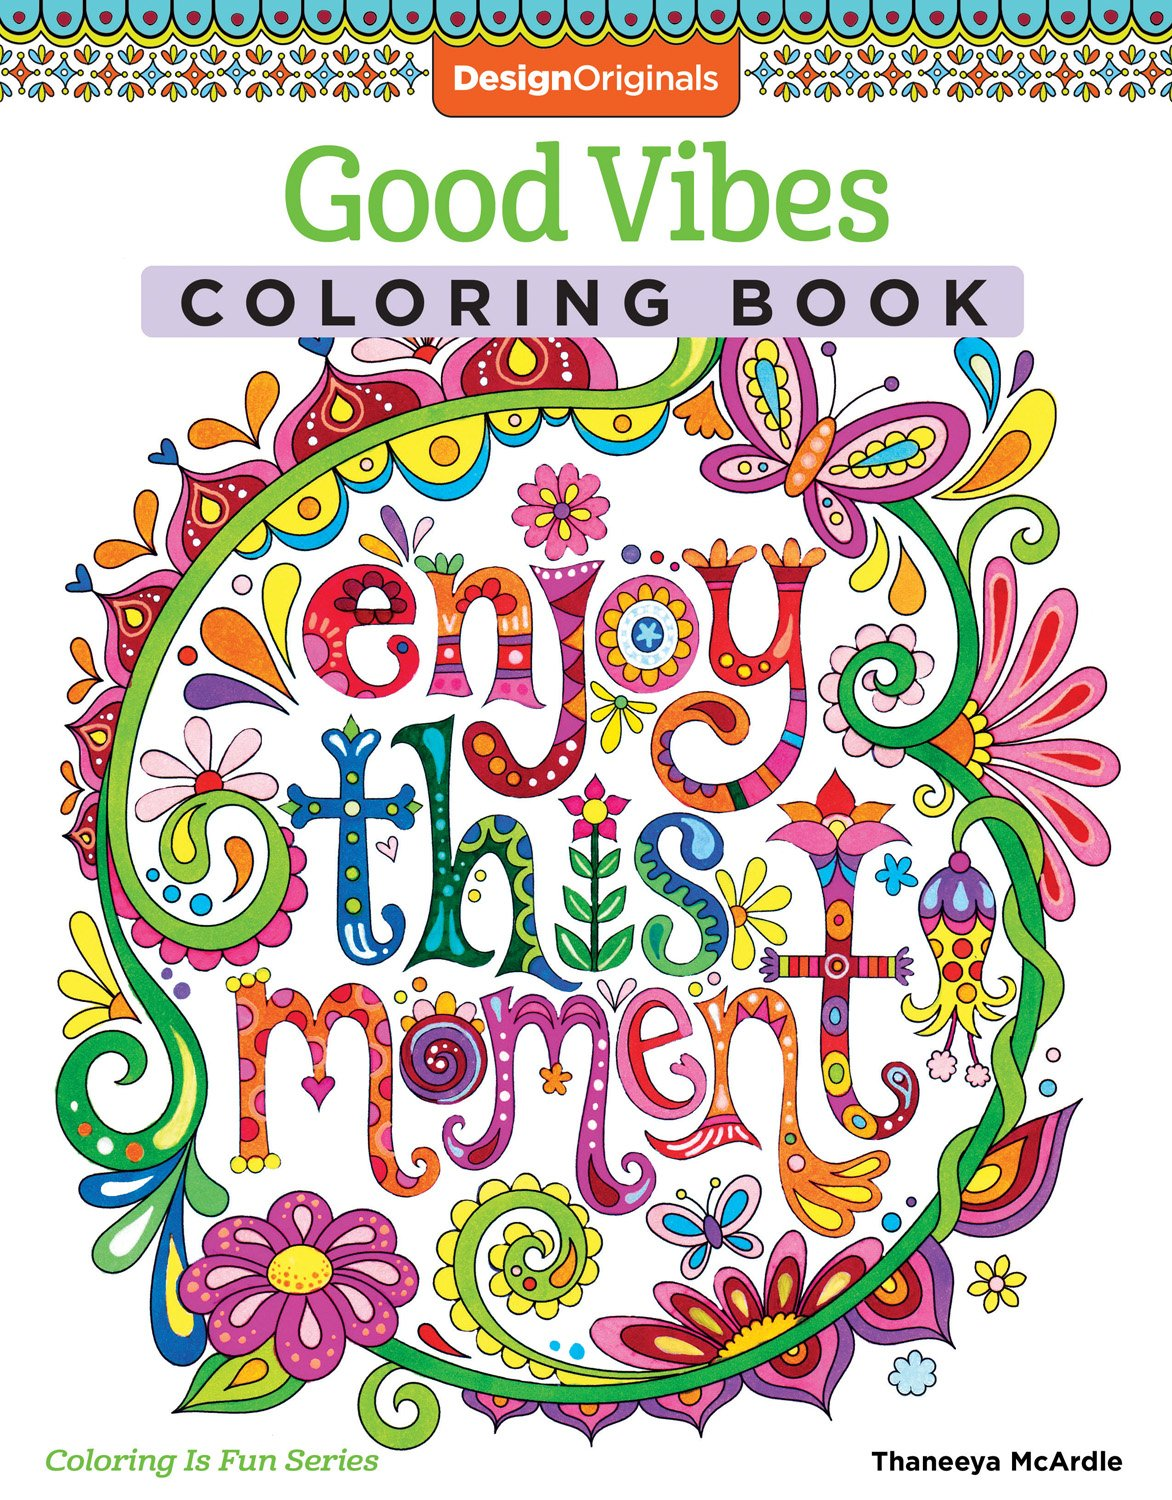 Good Vibes Coloring Book Fun product image